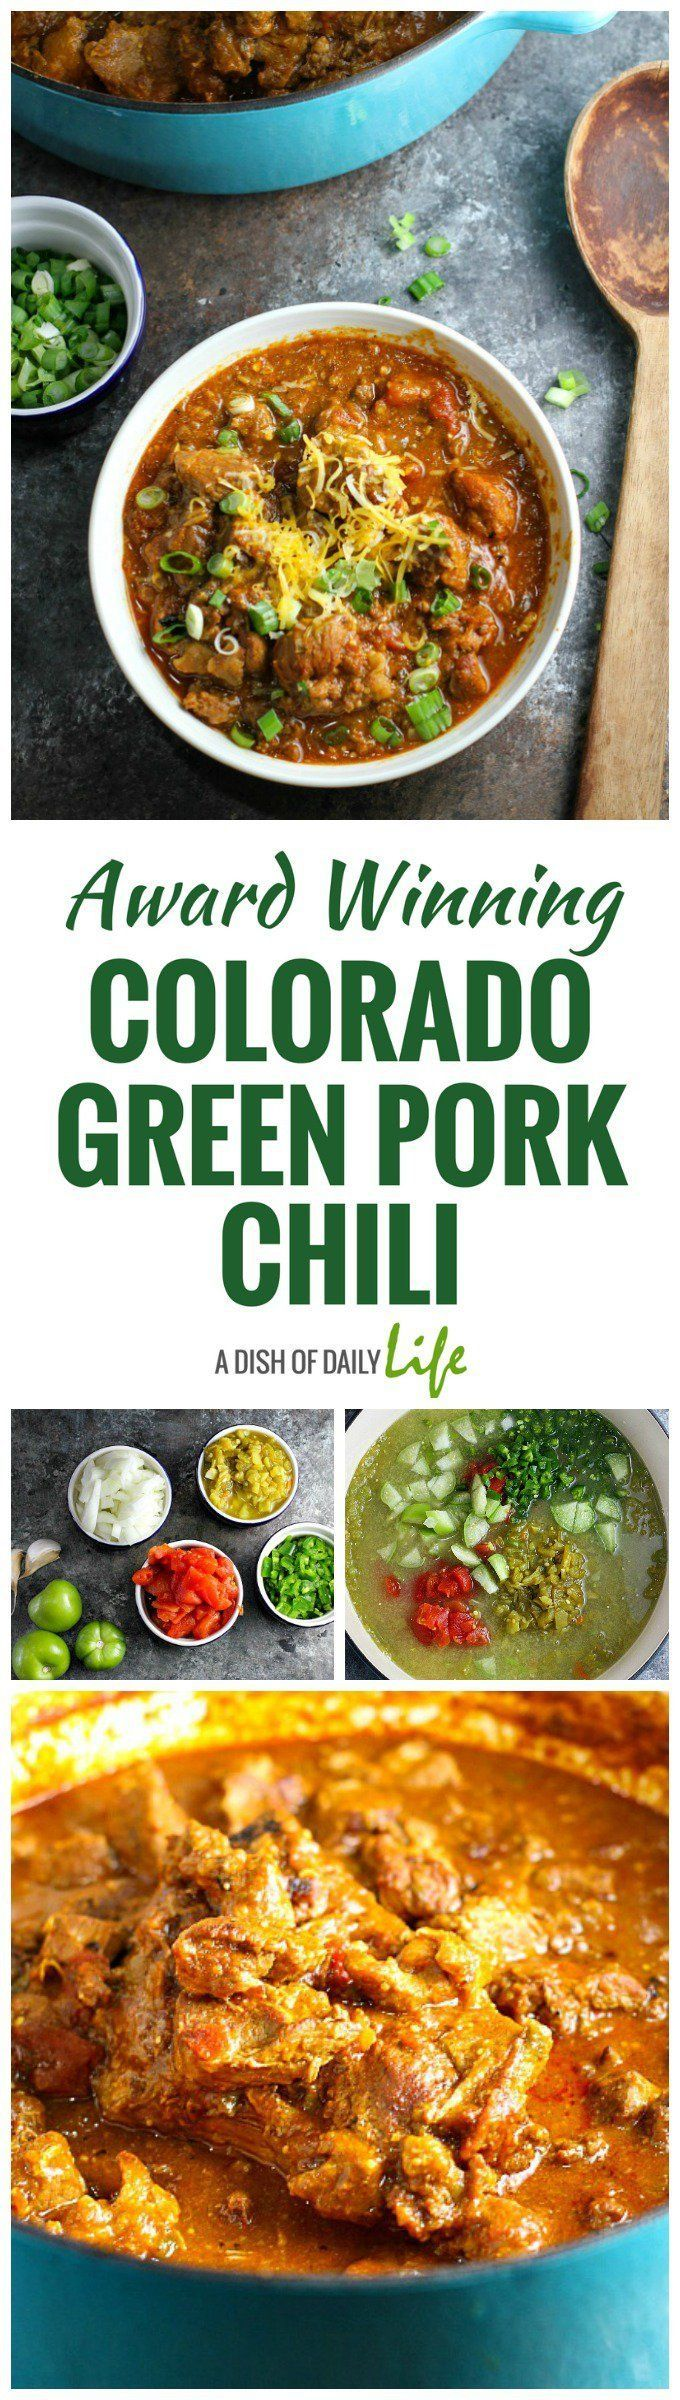 This Award Winning Colorado Green Pork Chili is delicious and comforting, packed with flavor and tender chunks of pork! It's perfect for a chilly evening or game day. You need this chili recipe in your life!